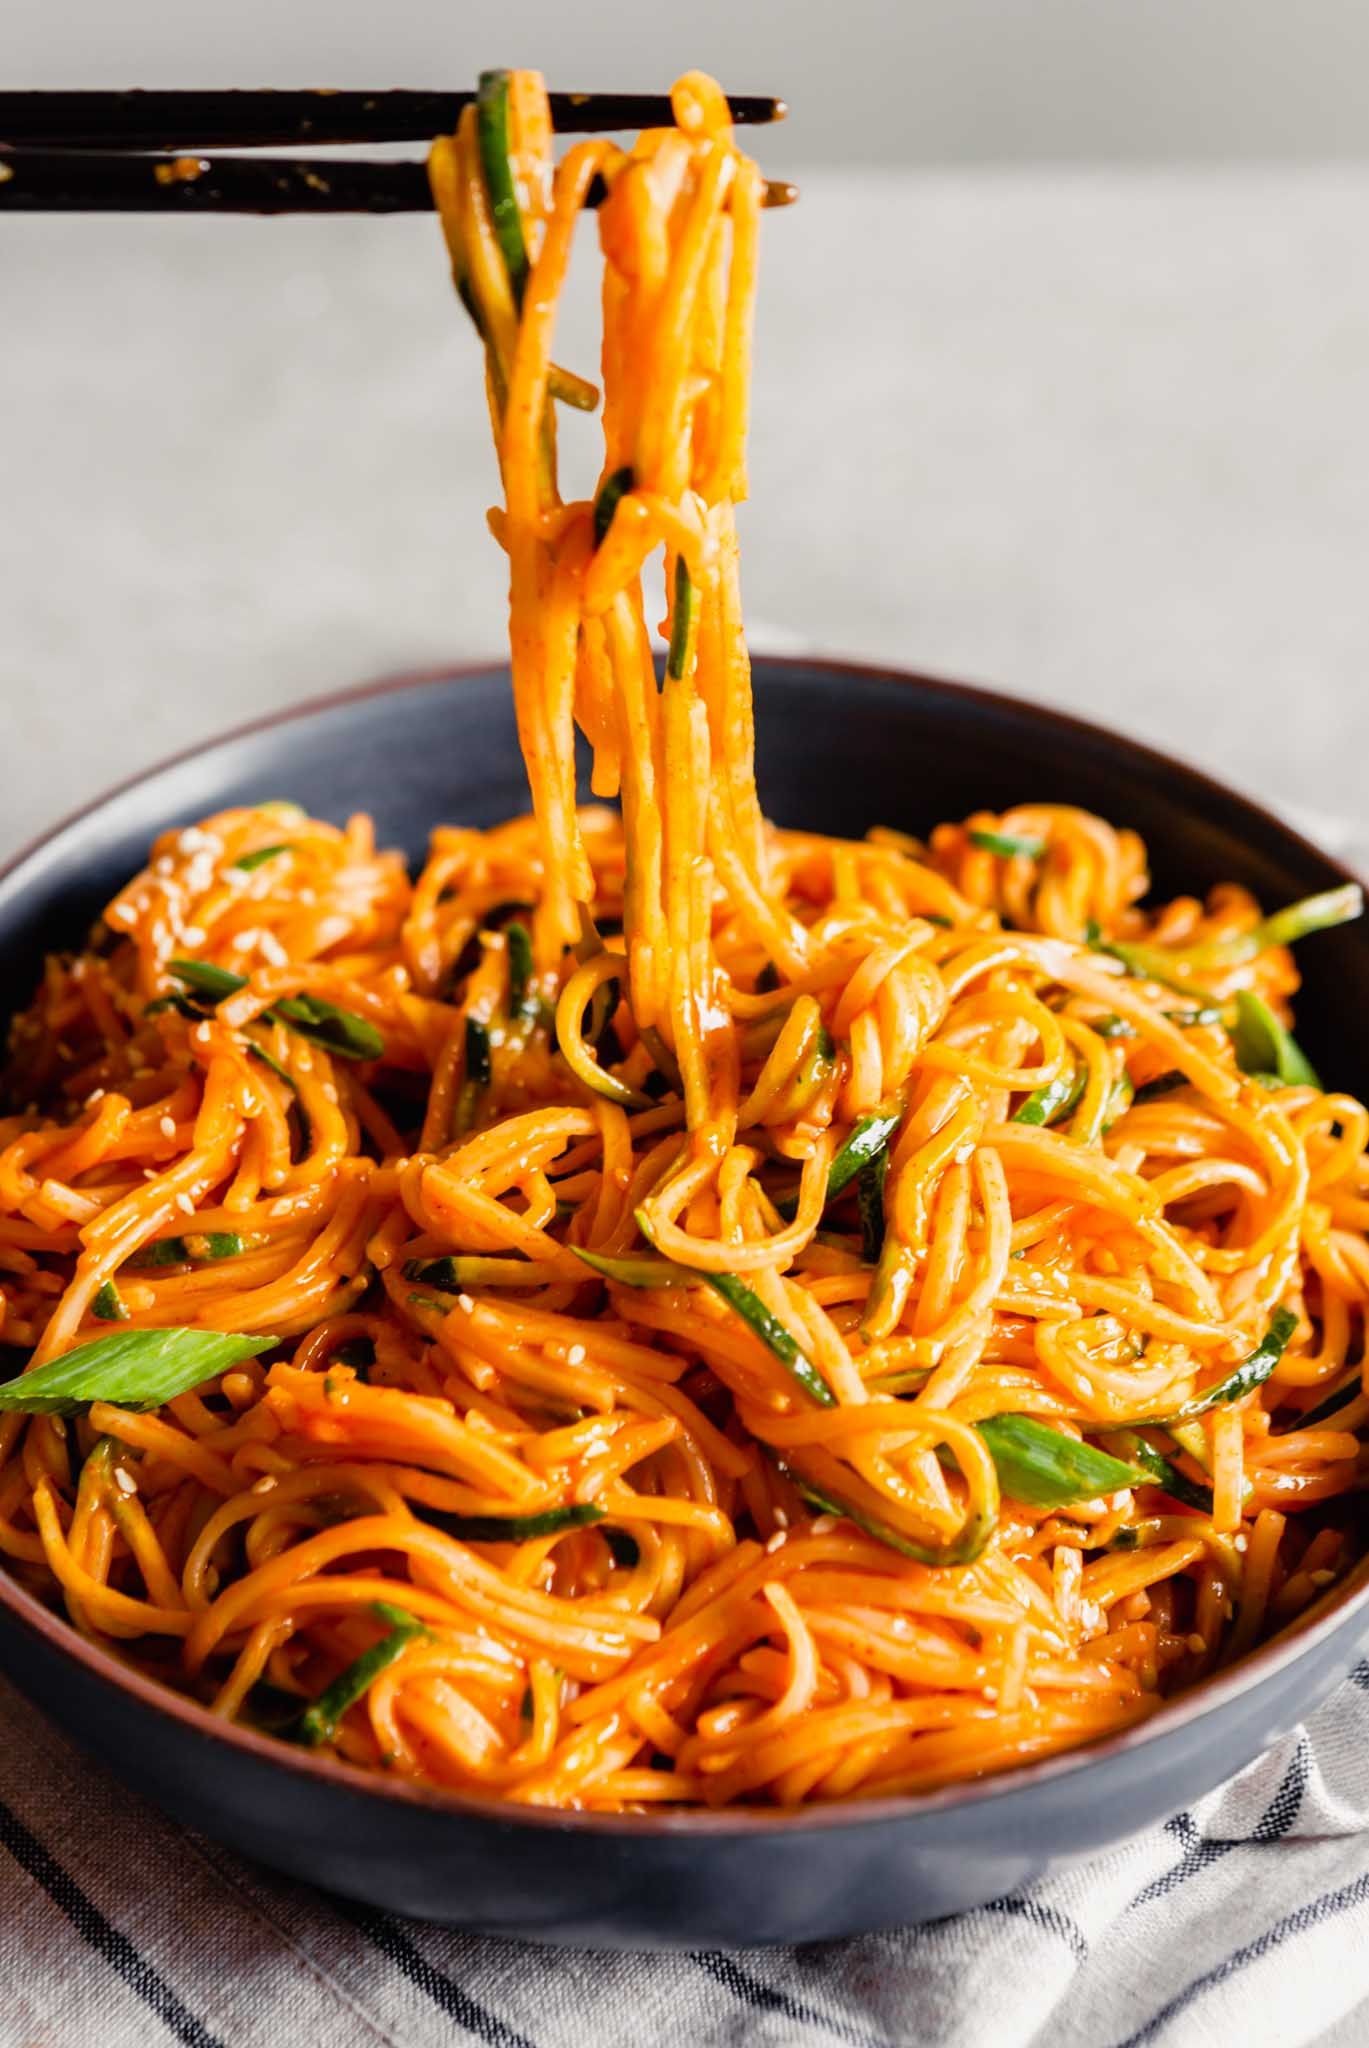 photo of chopsticks pulling a pile of bright orange gochujang noodles up from a bowl